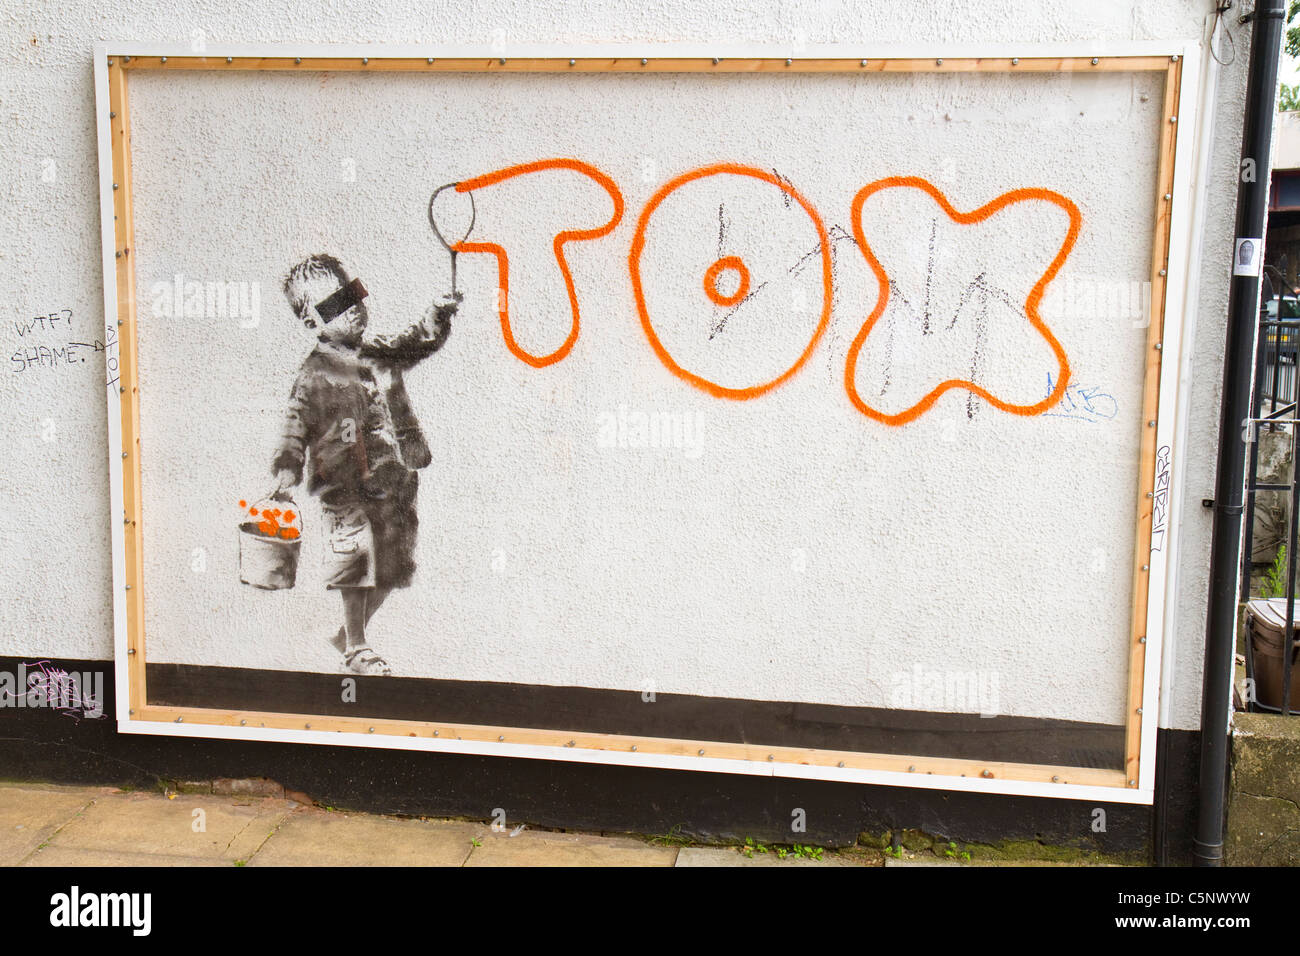 Graffiti Art By Street Artist Banksy Which Mentions Another Graffiti  Writer, Tox, On A